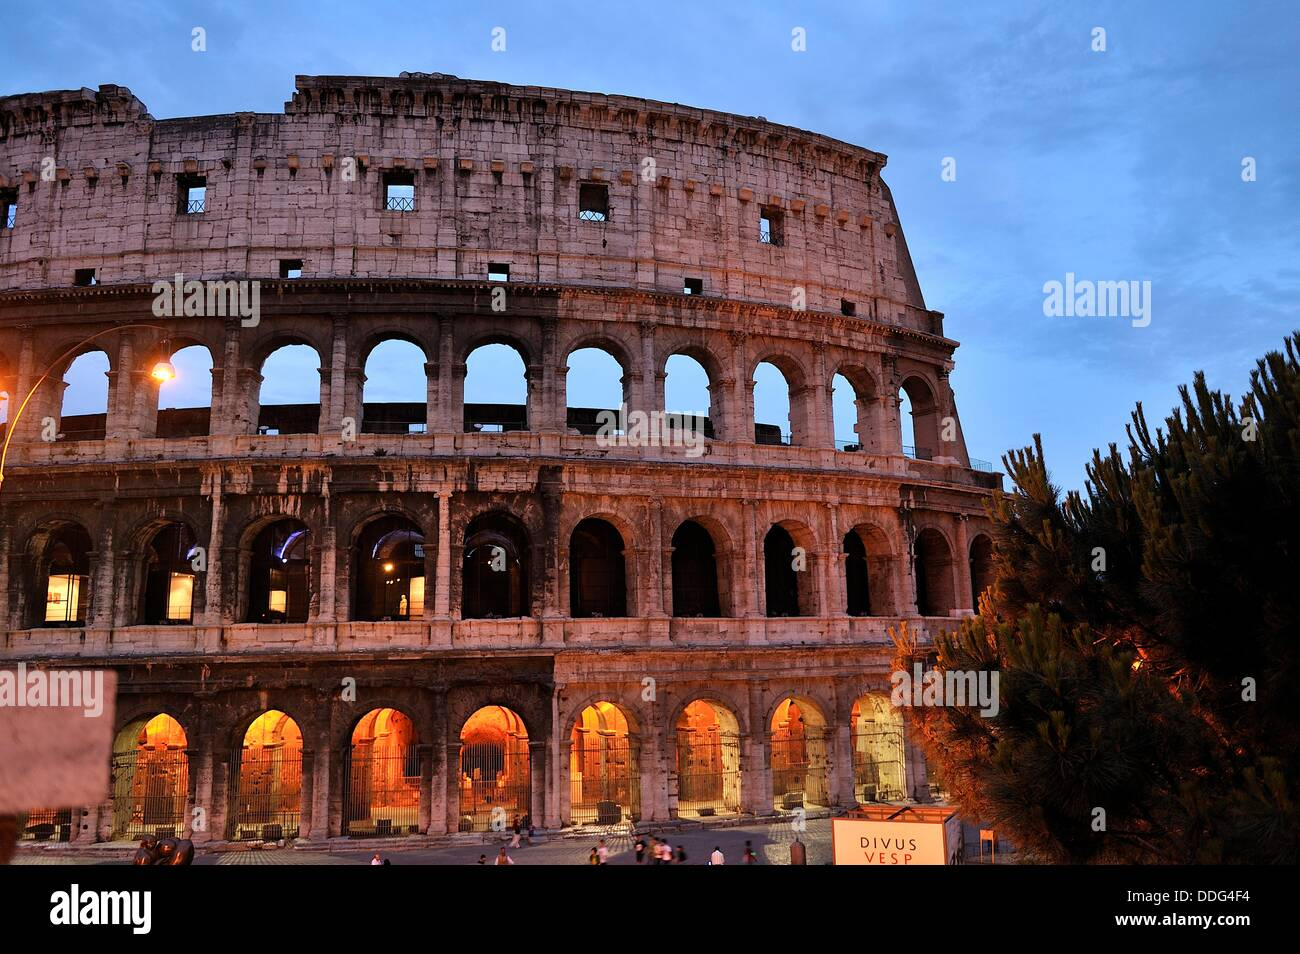 Colosseum at sunset photographed - Stock Image